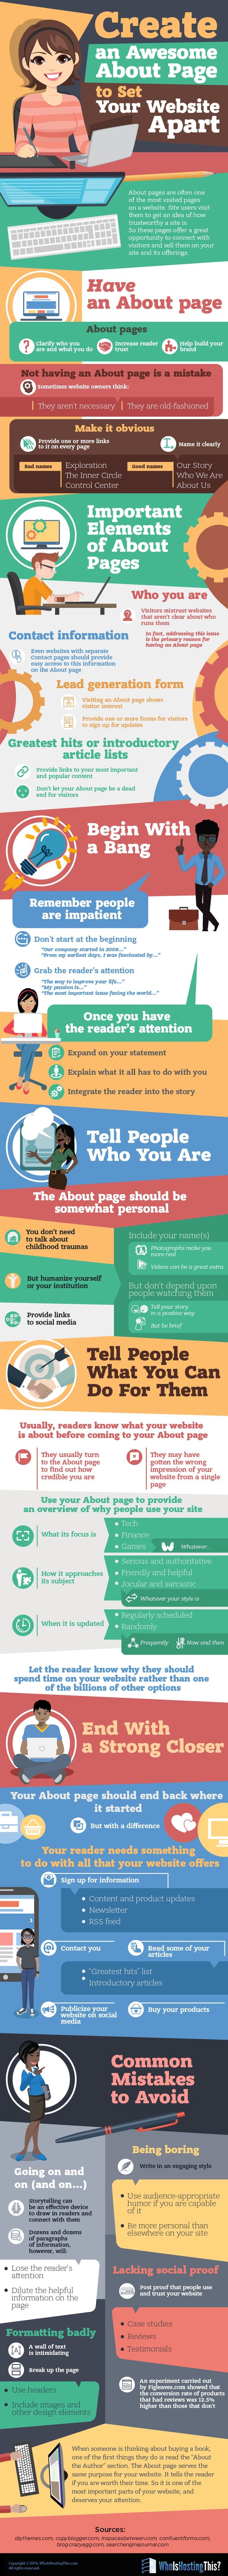 Make Your Website Stand Out! 30 Dos & Don'ts for Your About Page #Infographic #WebDesign